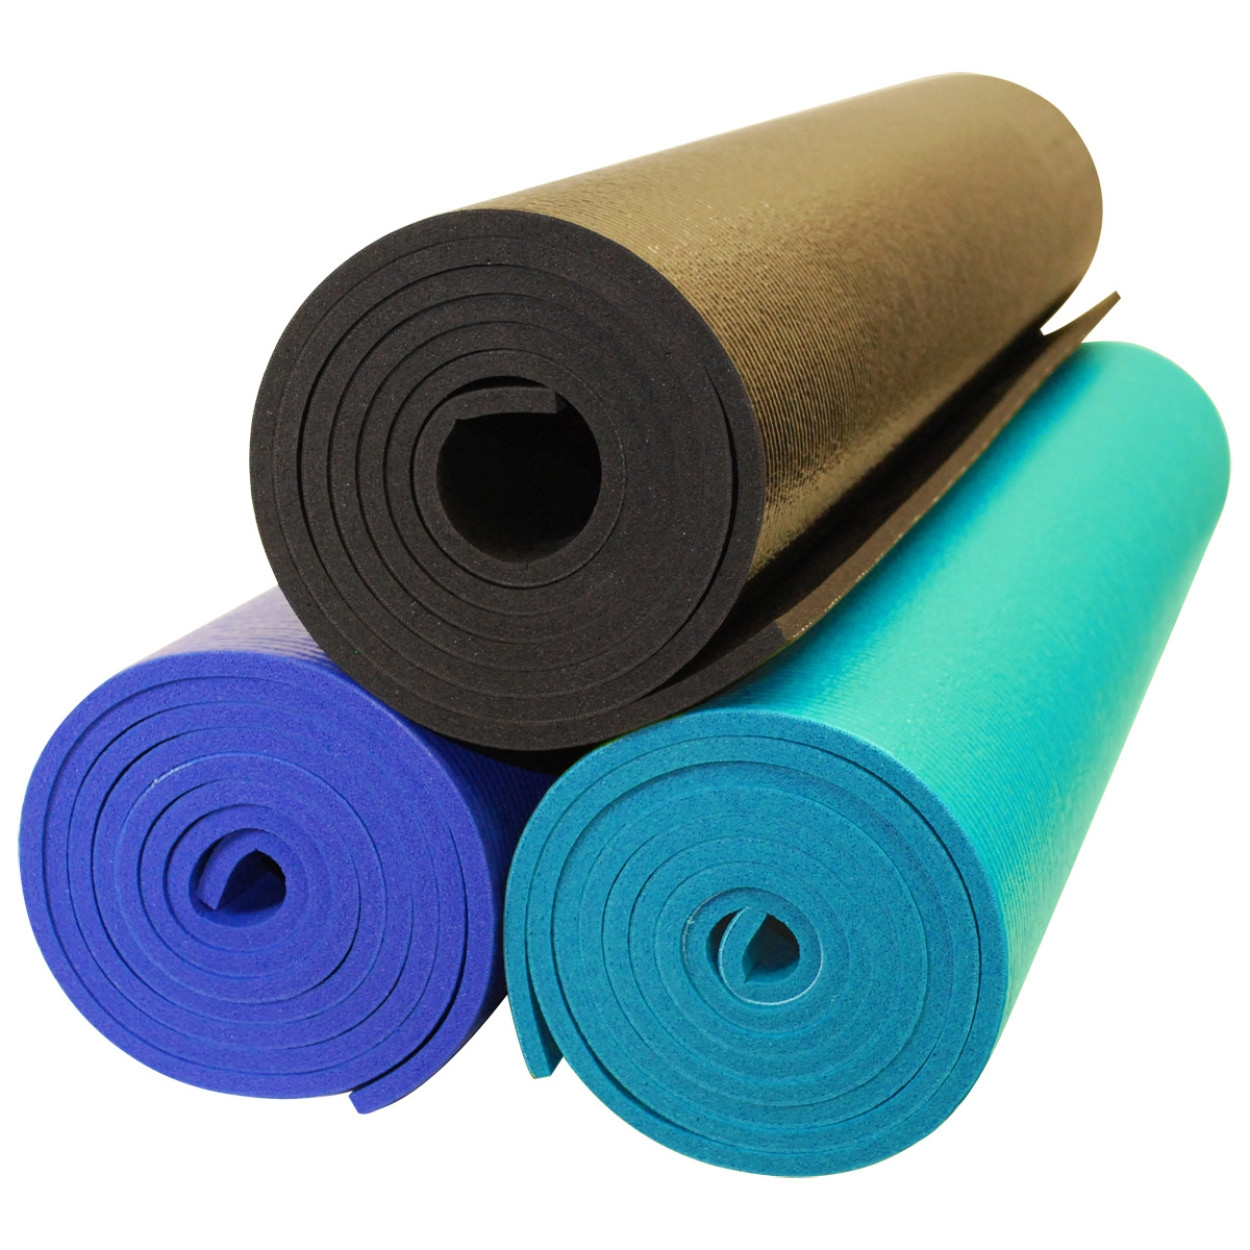 YOGA Accessories Premium Weight Yoga Mat - Buy One Get One Free